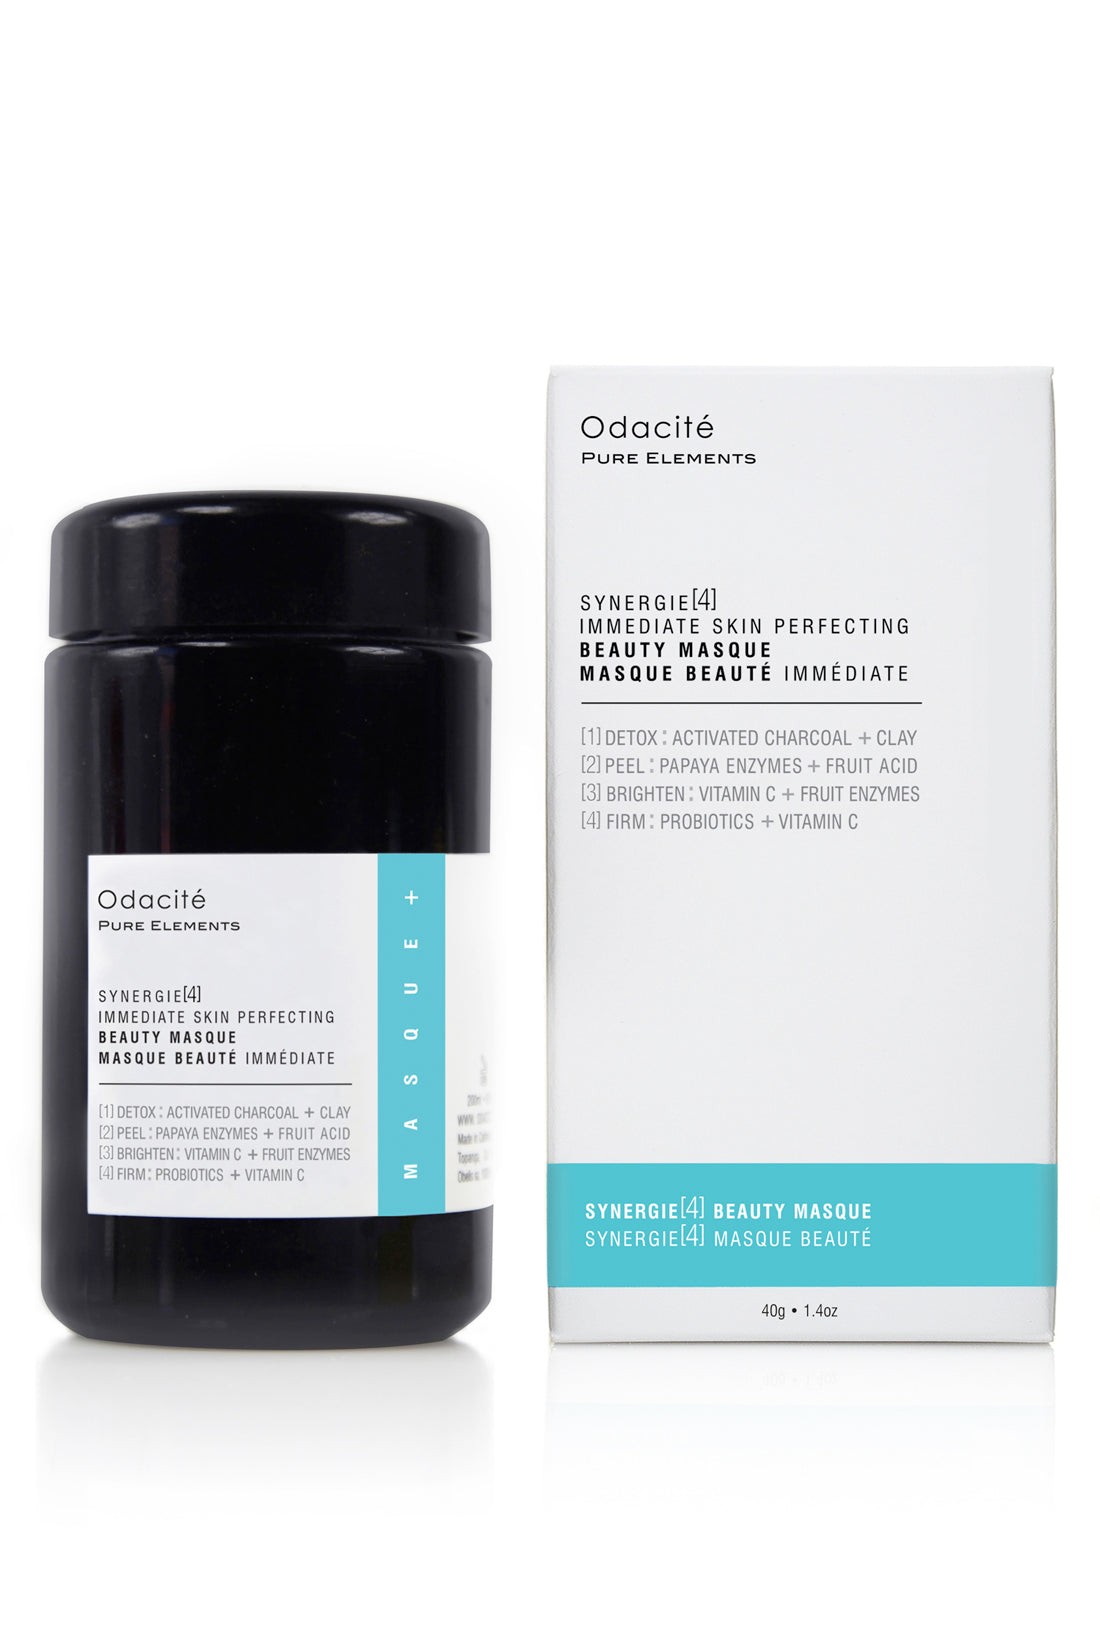 Synergie[4] Immediate Skin Perfecting Beauty Masque Full Size